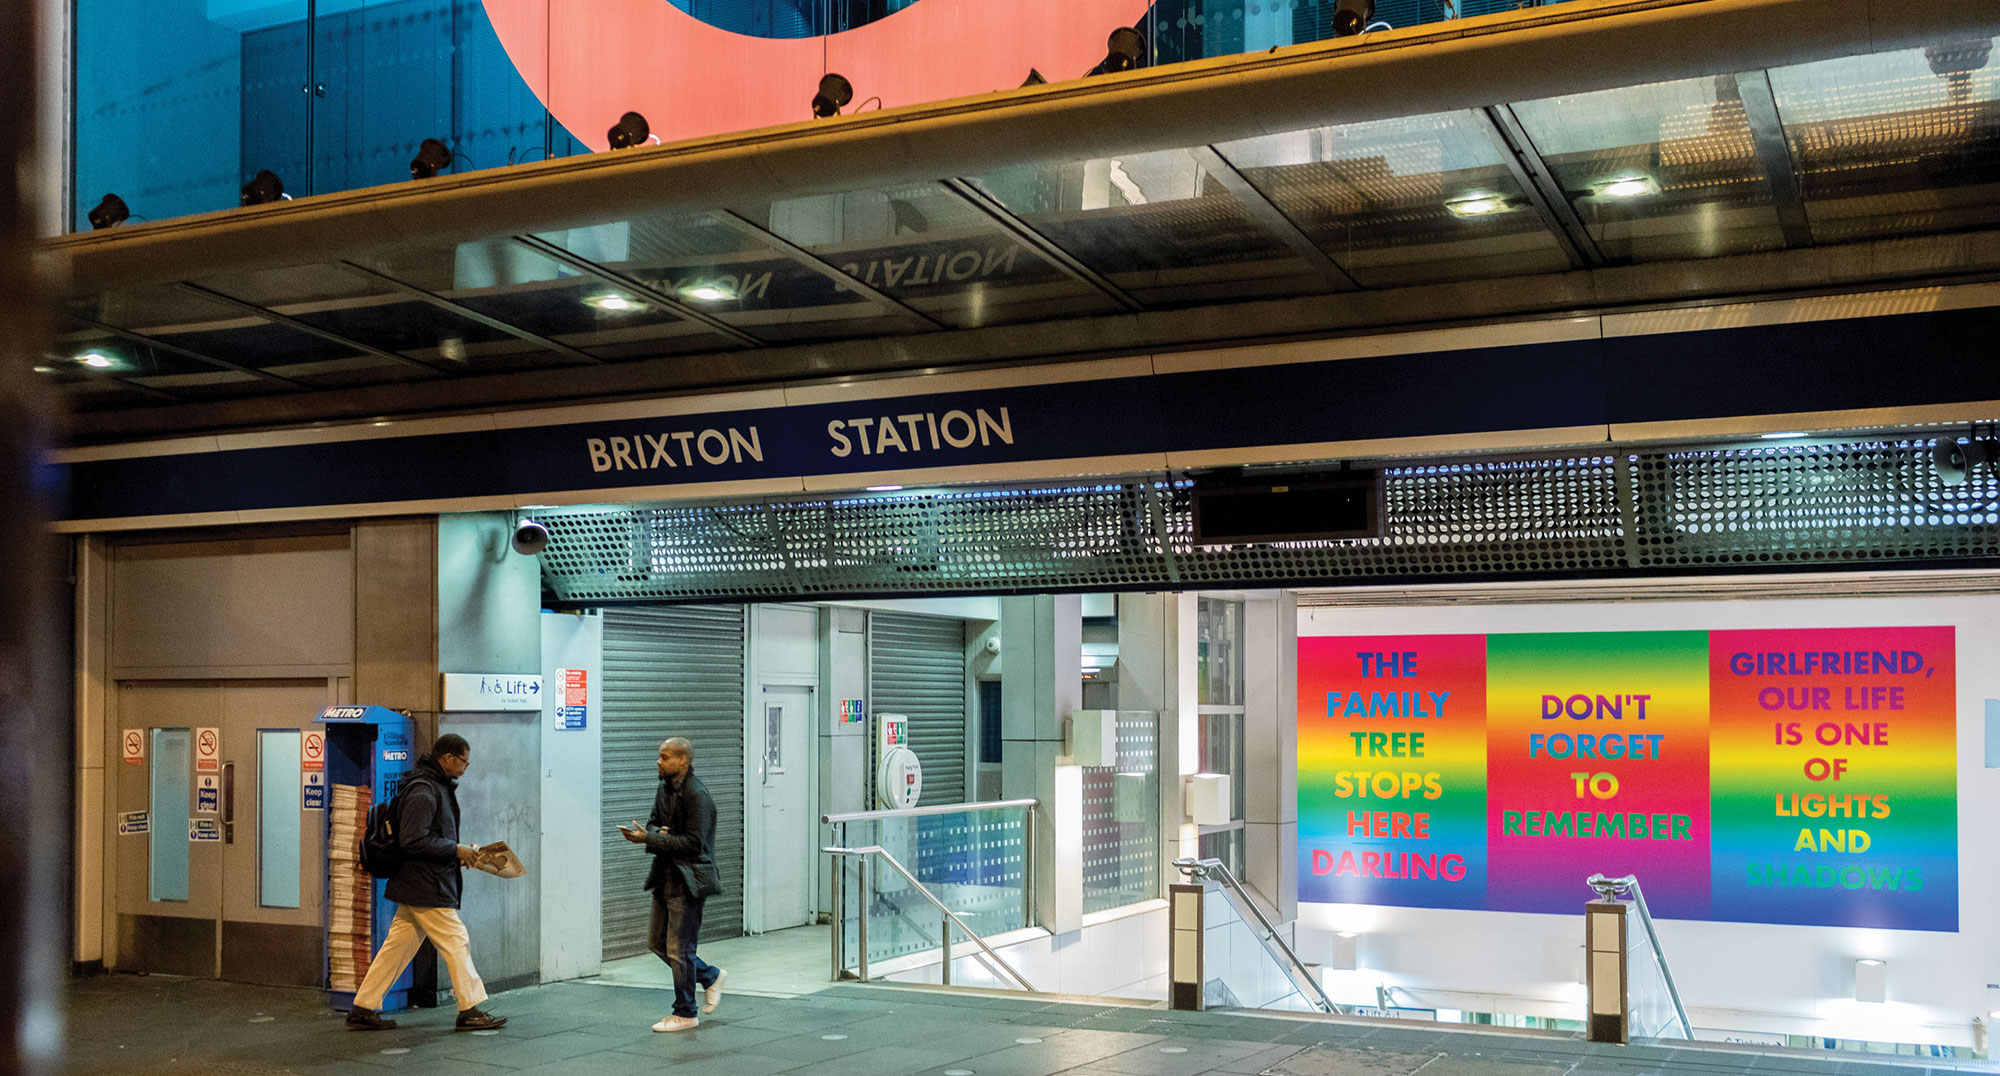 Bright typographic prints at Brixton station by David McDiarmid, Rainbow Aphorisms, 1993 - 1995, A Studio Voltaire Project, Brixton Tube Station, 2017 Courtesy of the artist and the Estate of David McDiarmid, Sydney